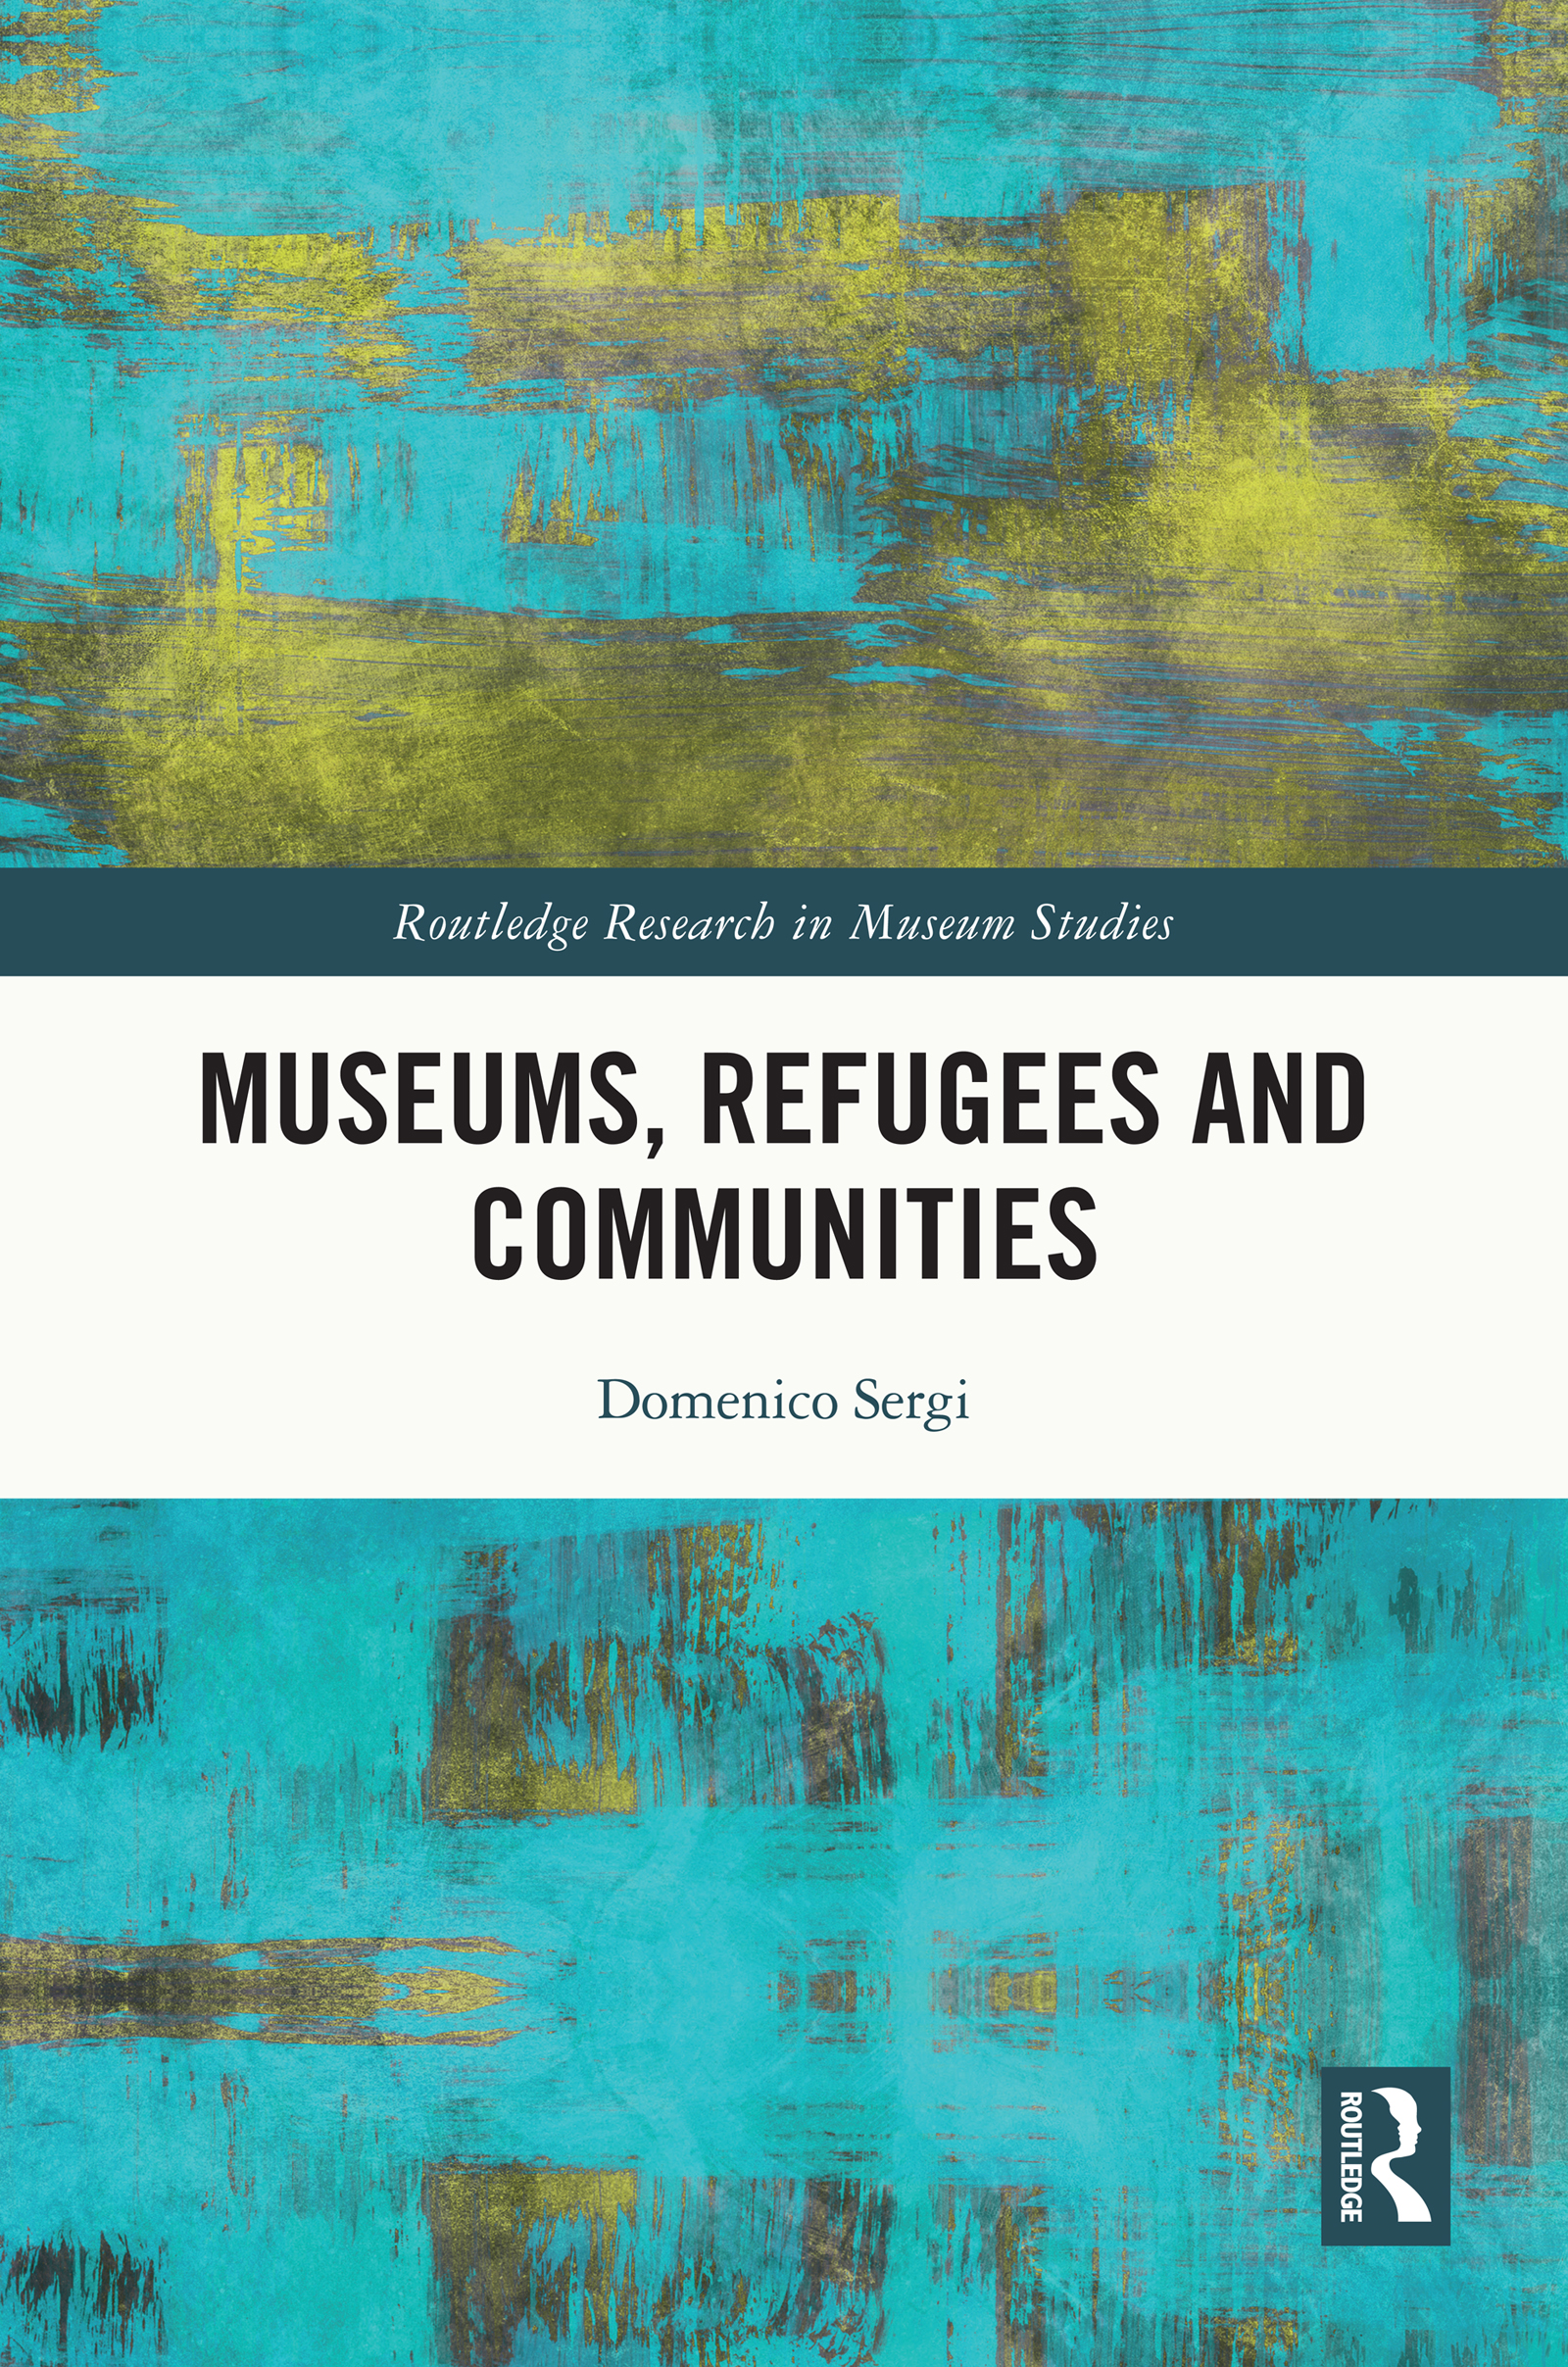 Pathos and agency in museums' refugee work